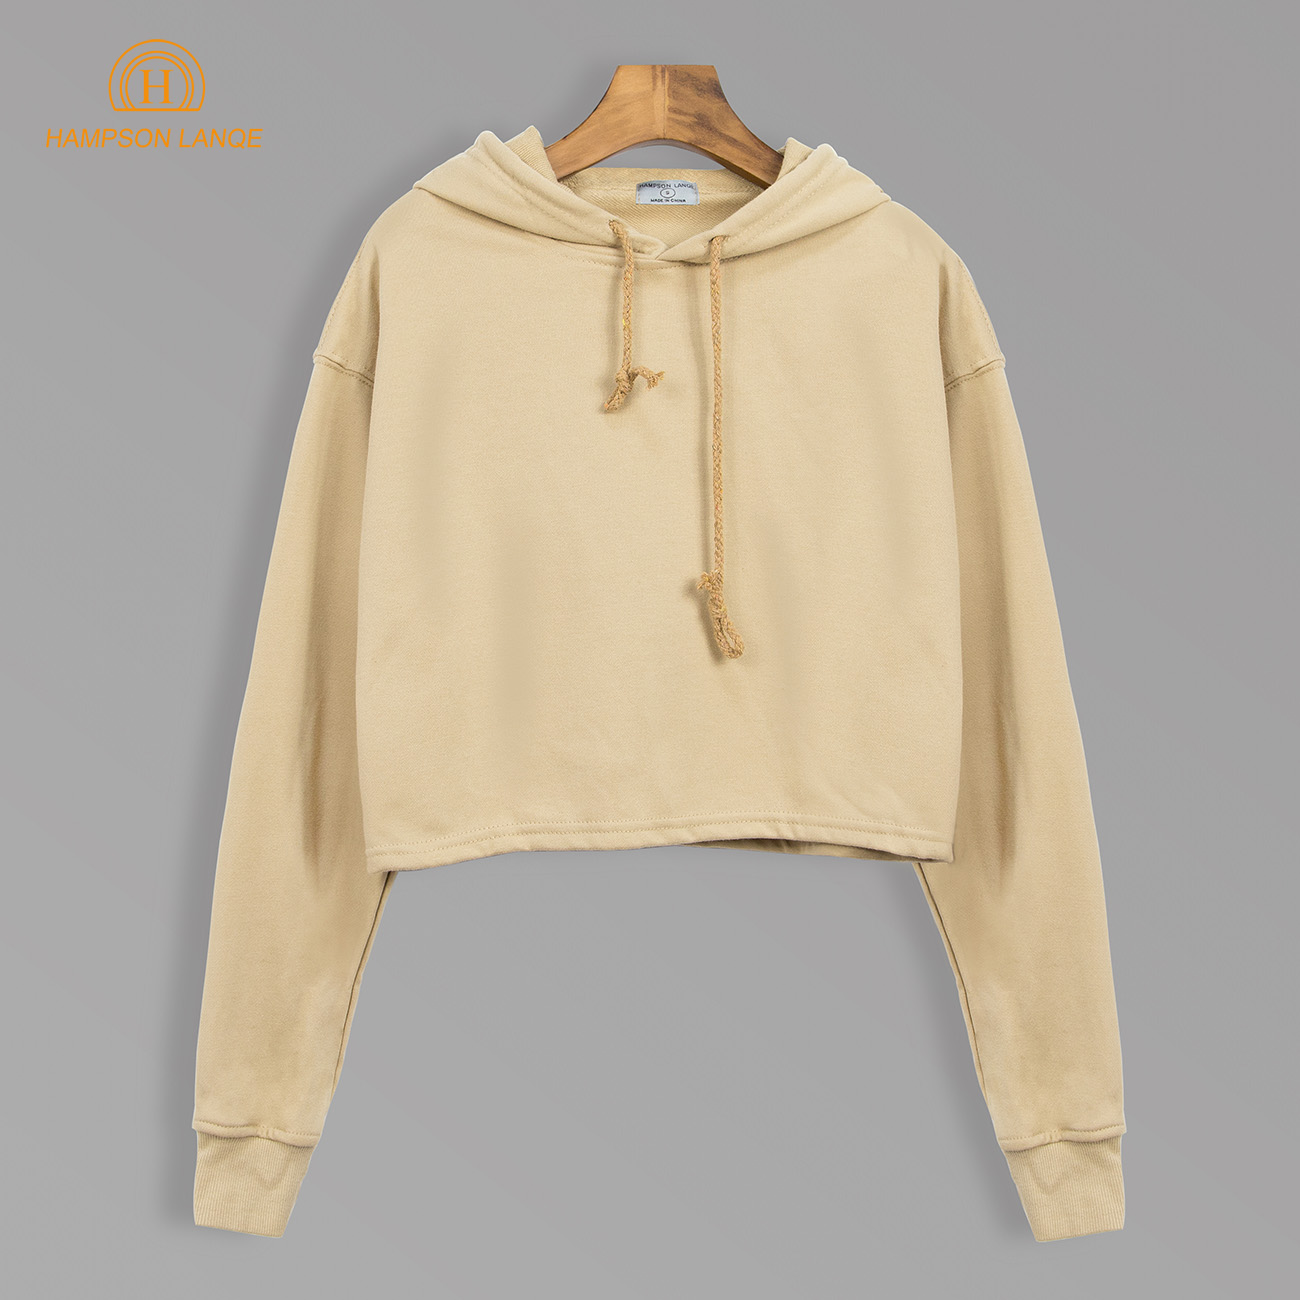 Autumn 2020 Cropped Cotton Solid Hoodies Women Short Style Sweatshirts Female Navy Blue Gray Orange Camel Turquoise Pullovers